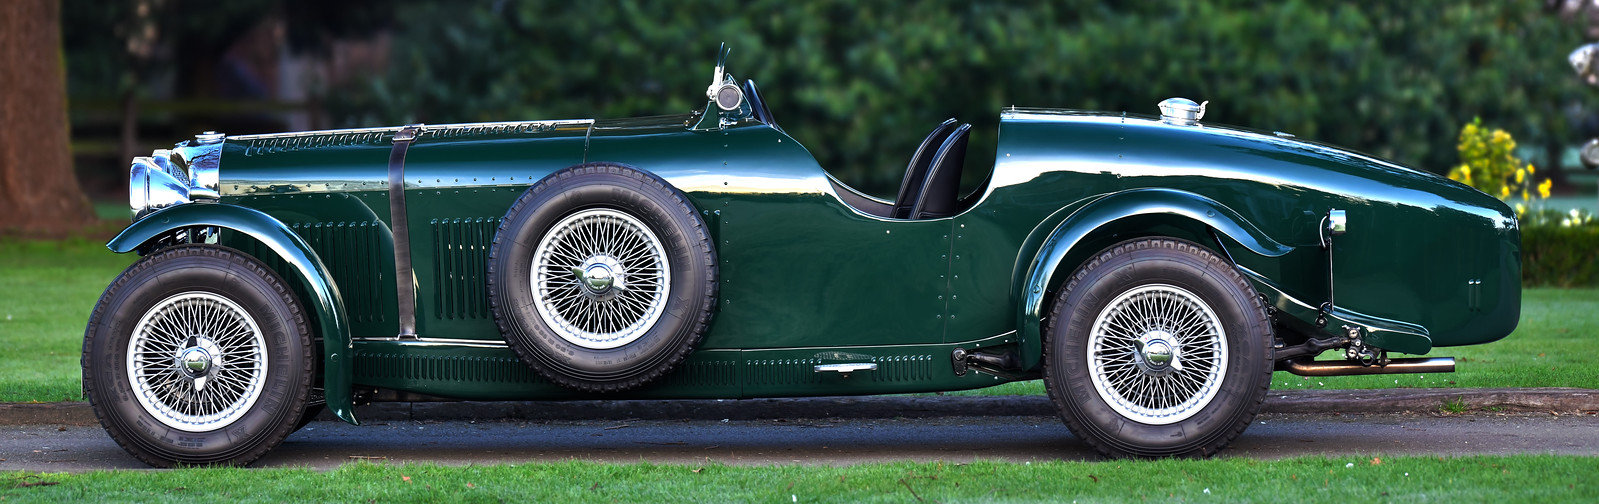 1951 Bentley MKVI Special Bodied Roadster For Sale (picture 3 of 6)